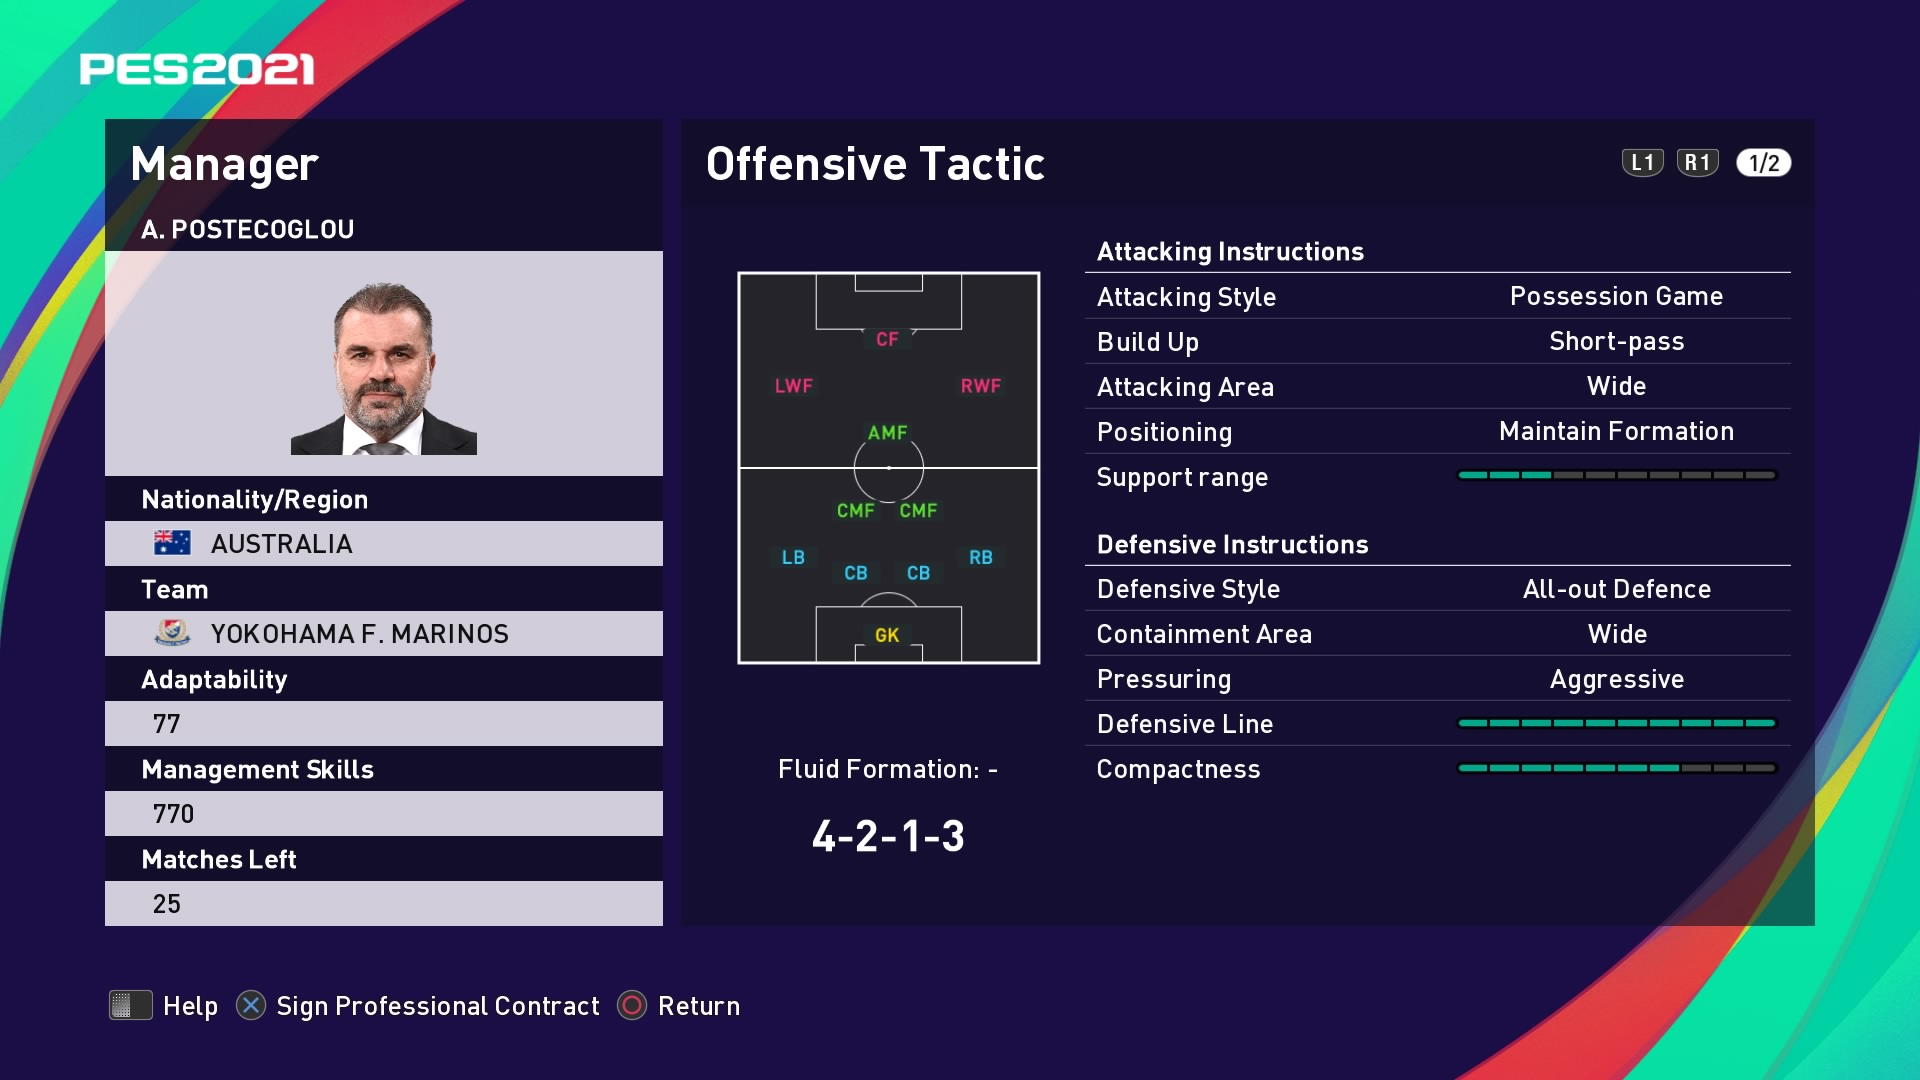 A. Postecoglou (Ange Postecoglou) Offensive Tactic in PES 2021 myClub